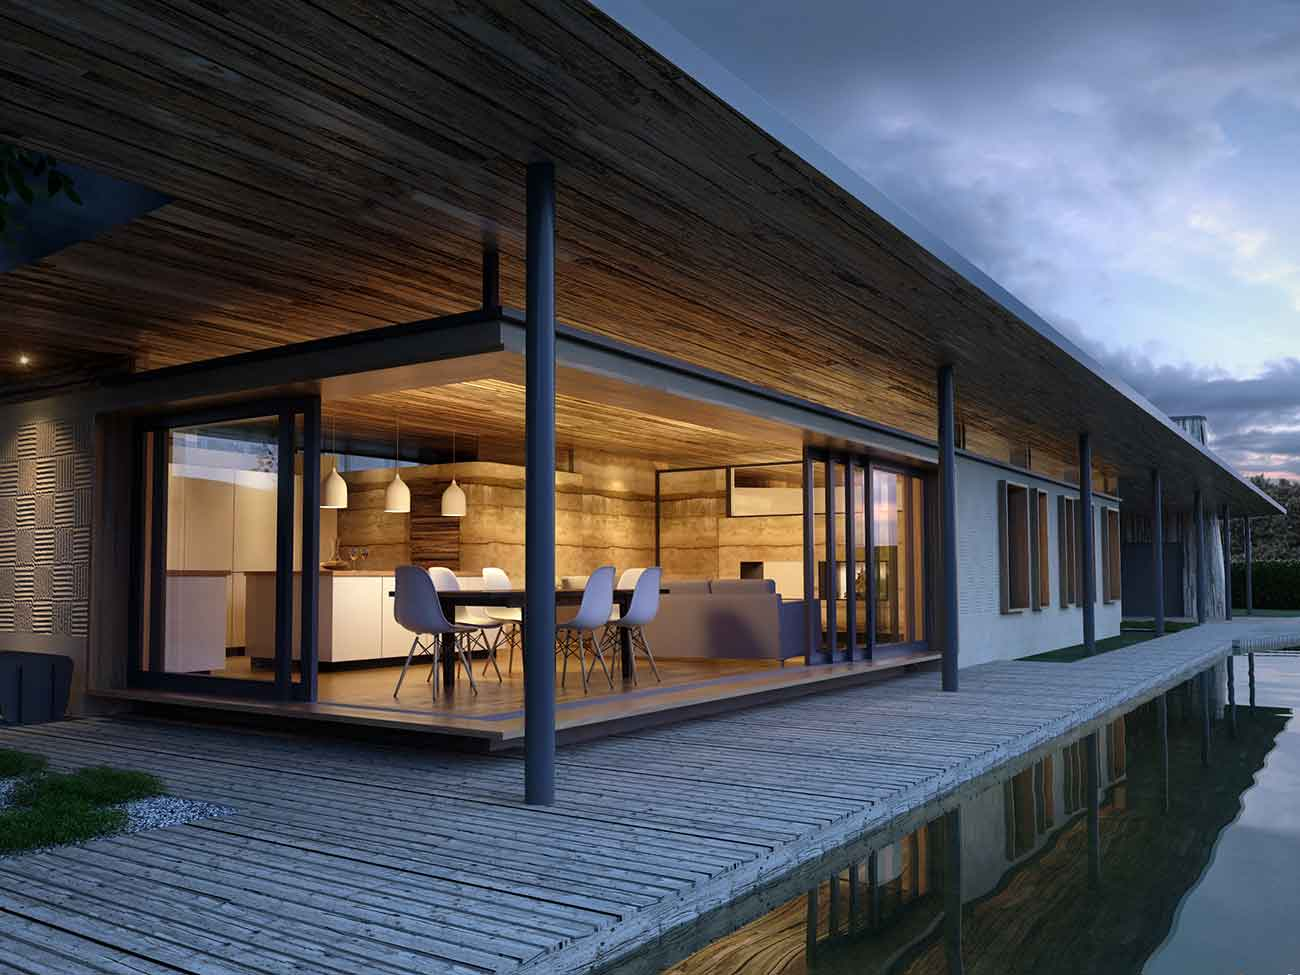 New Houses Eco-House Paragraph 55 Knoddishall Suffolk Beech Architects